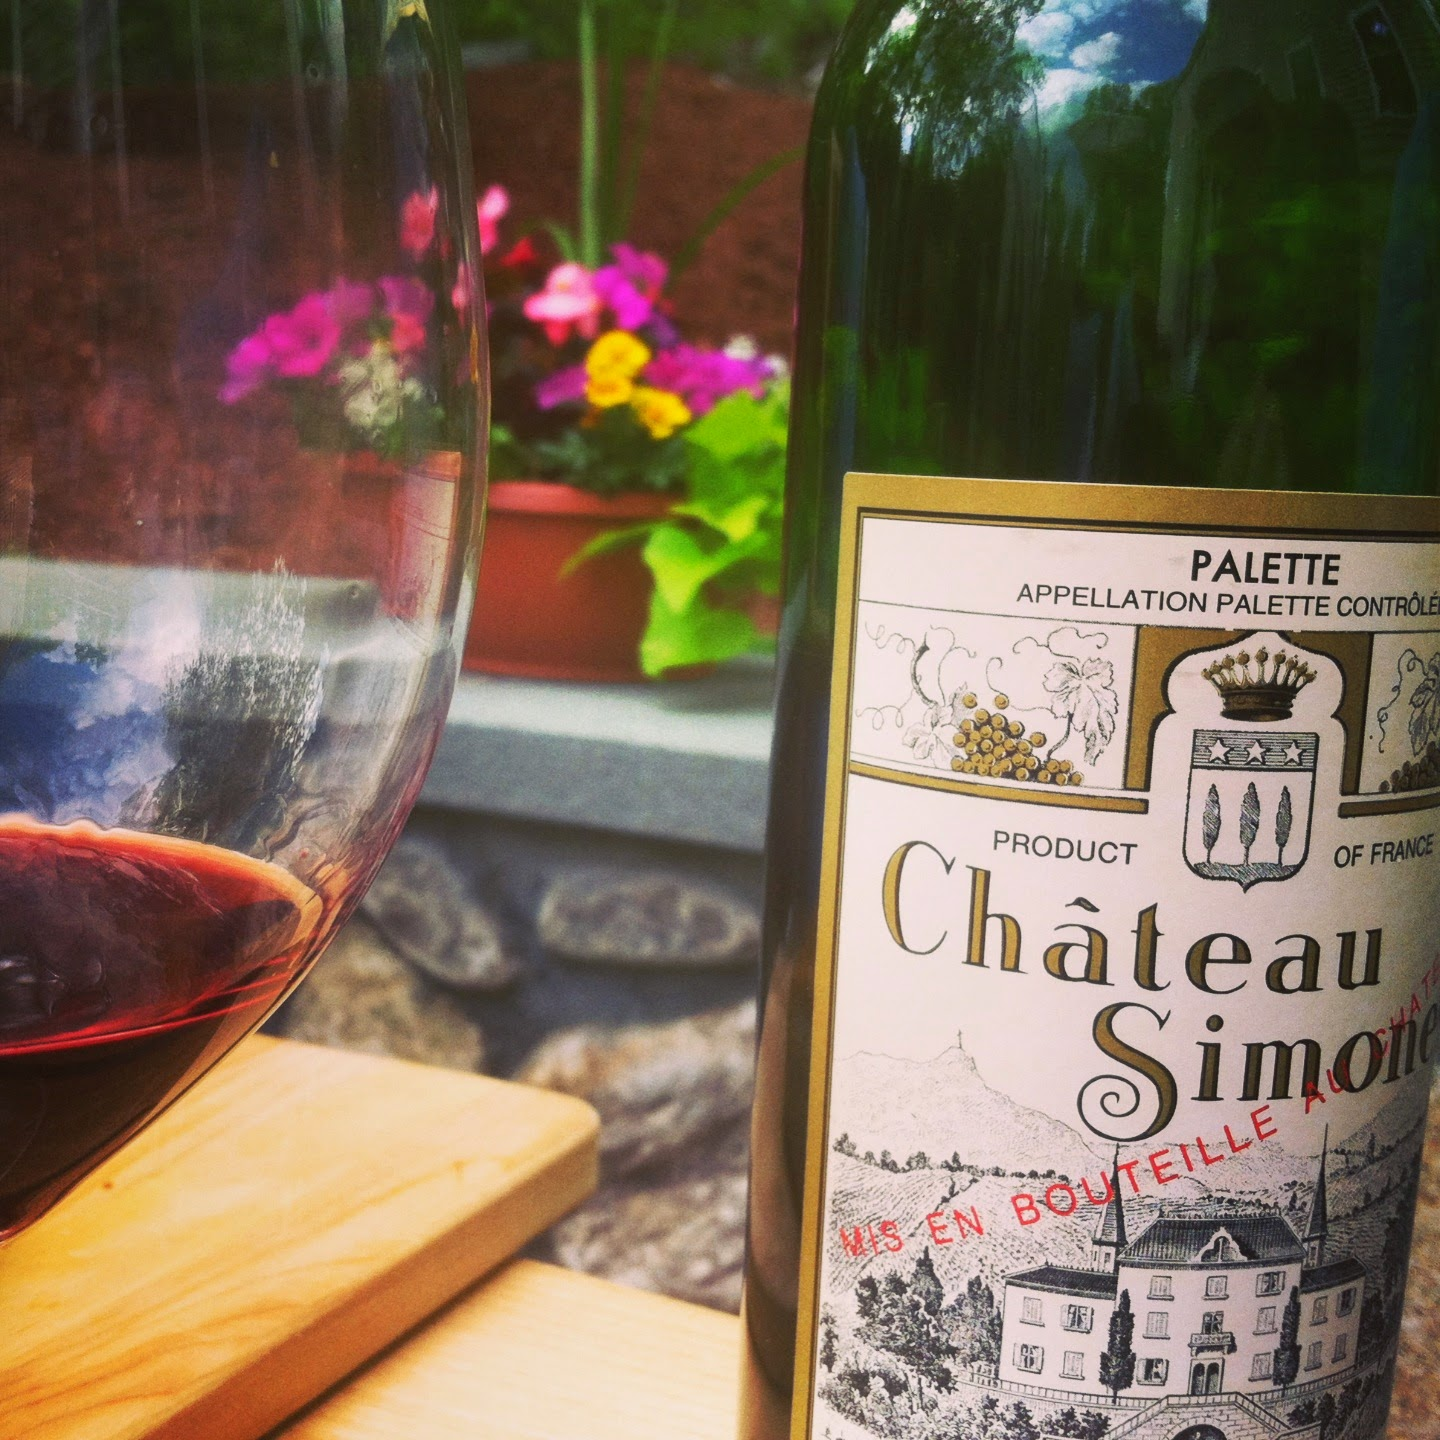 What wine do you like to sip on the patio? Share it with us for #winePW! The Chateau Simone is great on patio or anywhere.